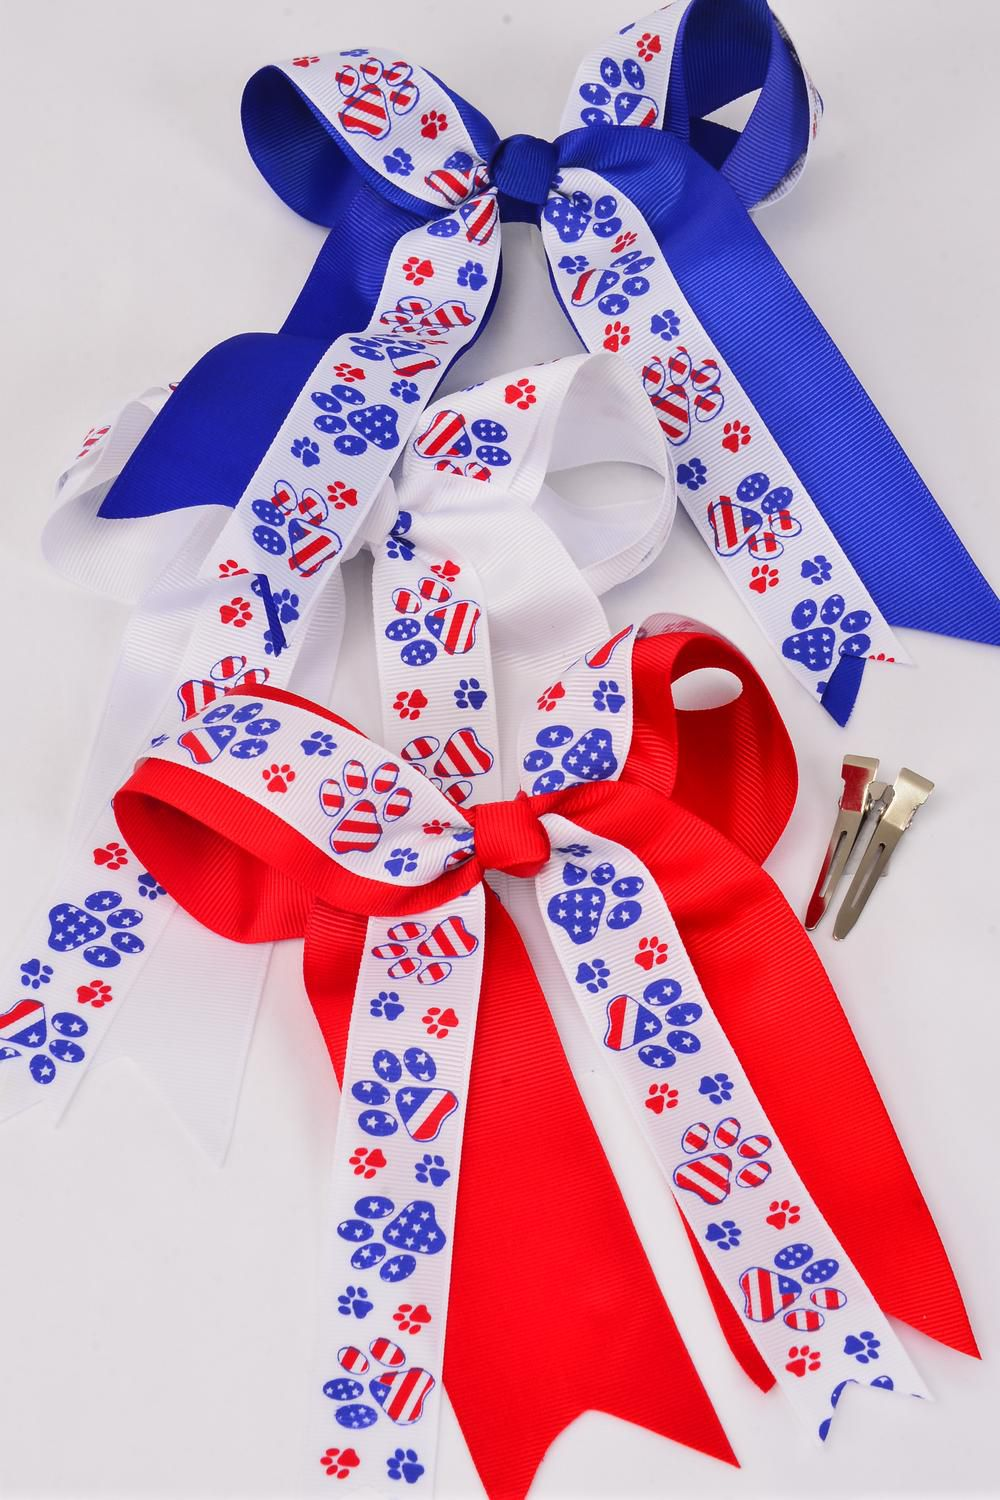 "Hair Bow Long Tail Jumbo Double Layered Patriotic Paw Grograin Bowtie/DZ ** Alligator Clip** Bow-7""x 6"" Wide,4 White,4 Red,4 Blue,3 Color Mix,Clip Strip & UPC Code"